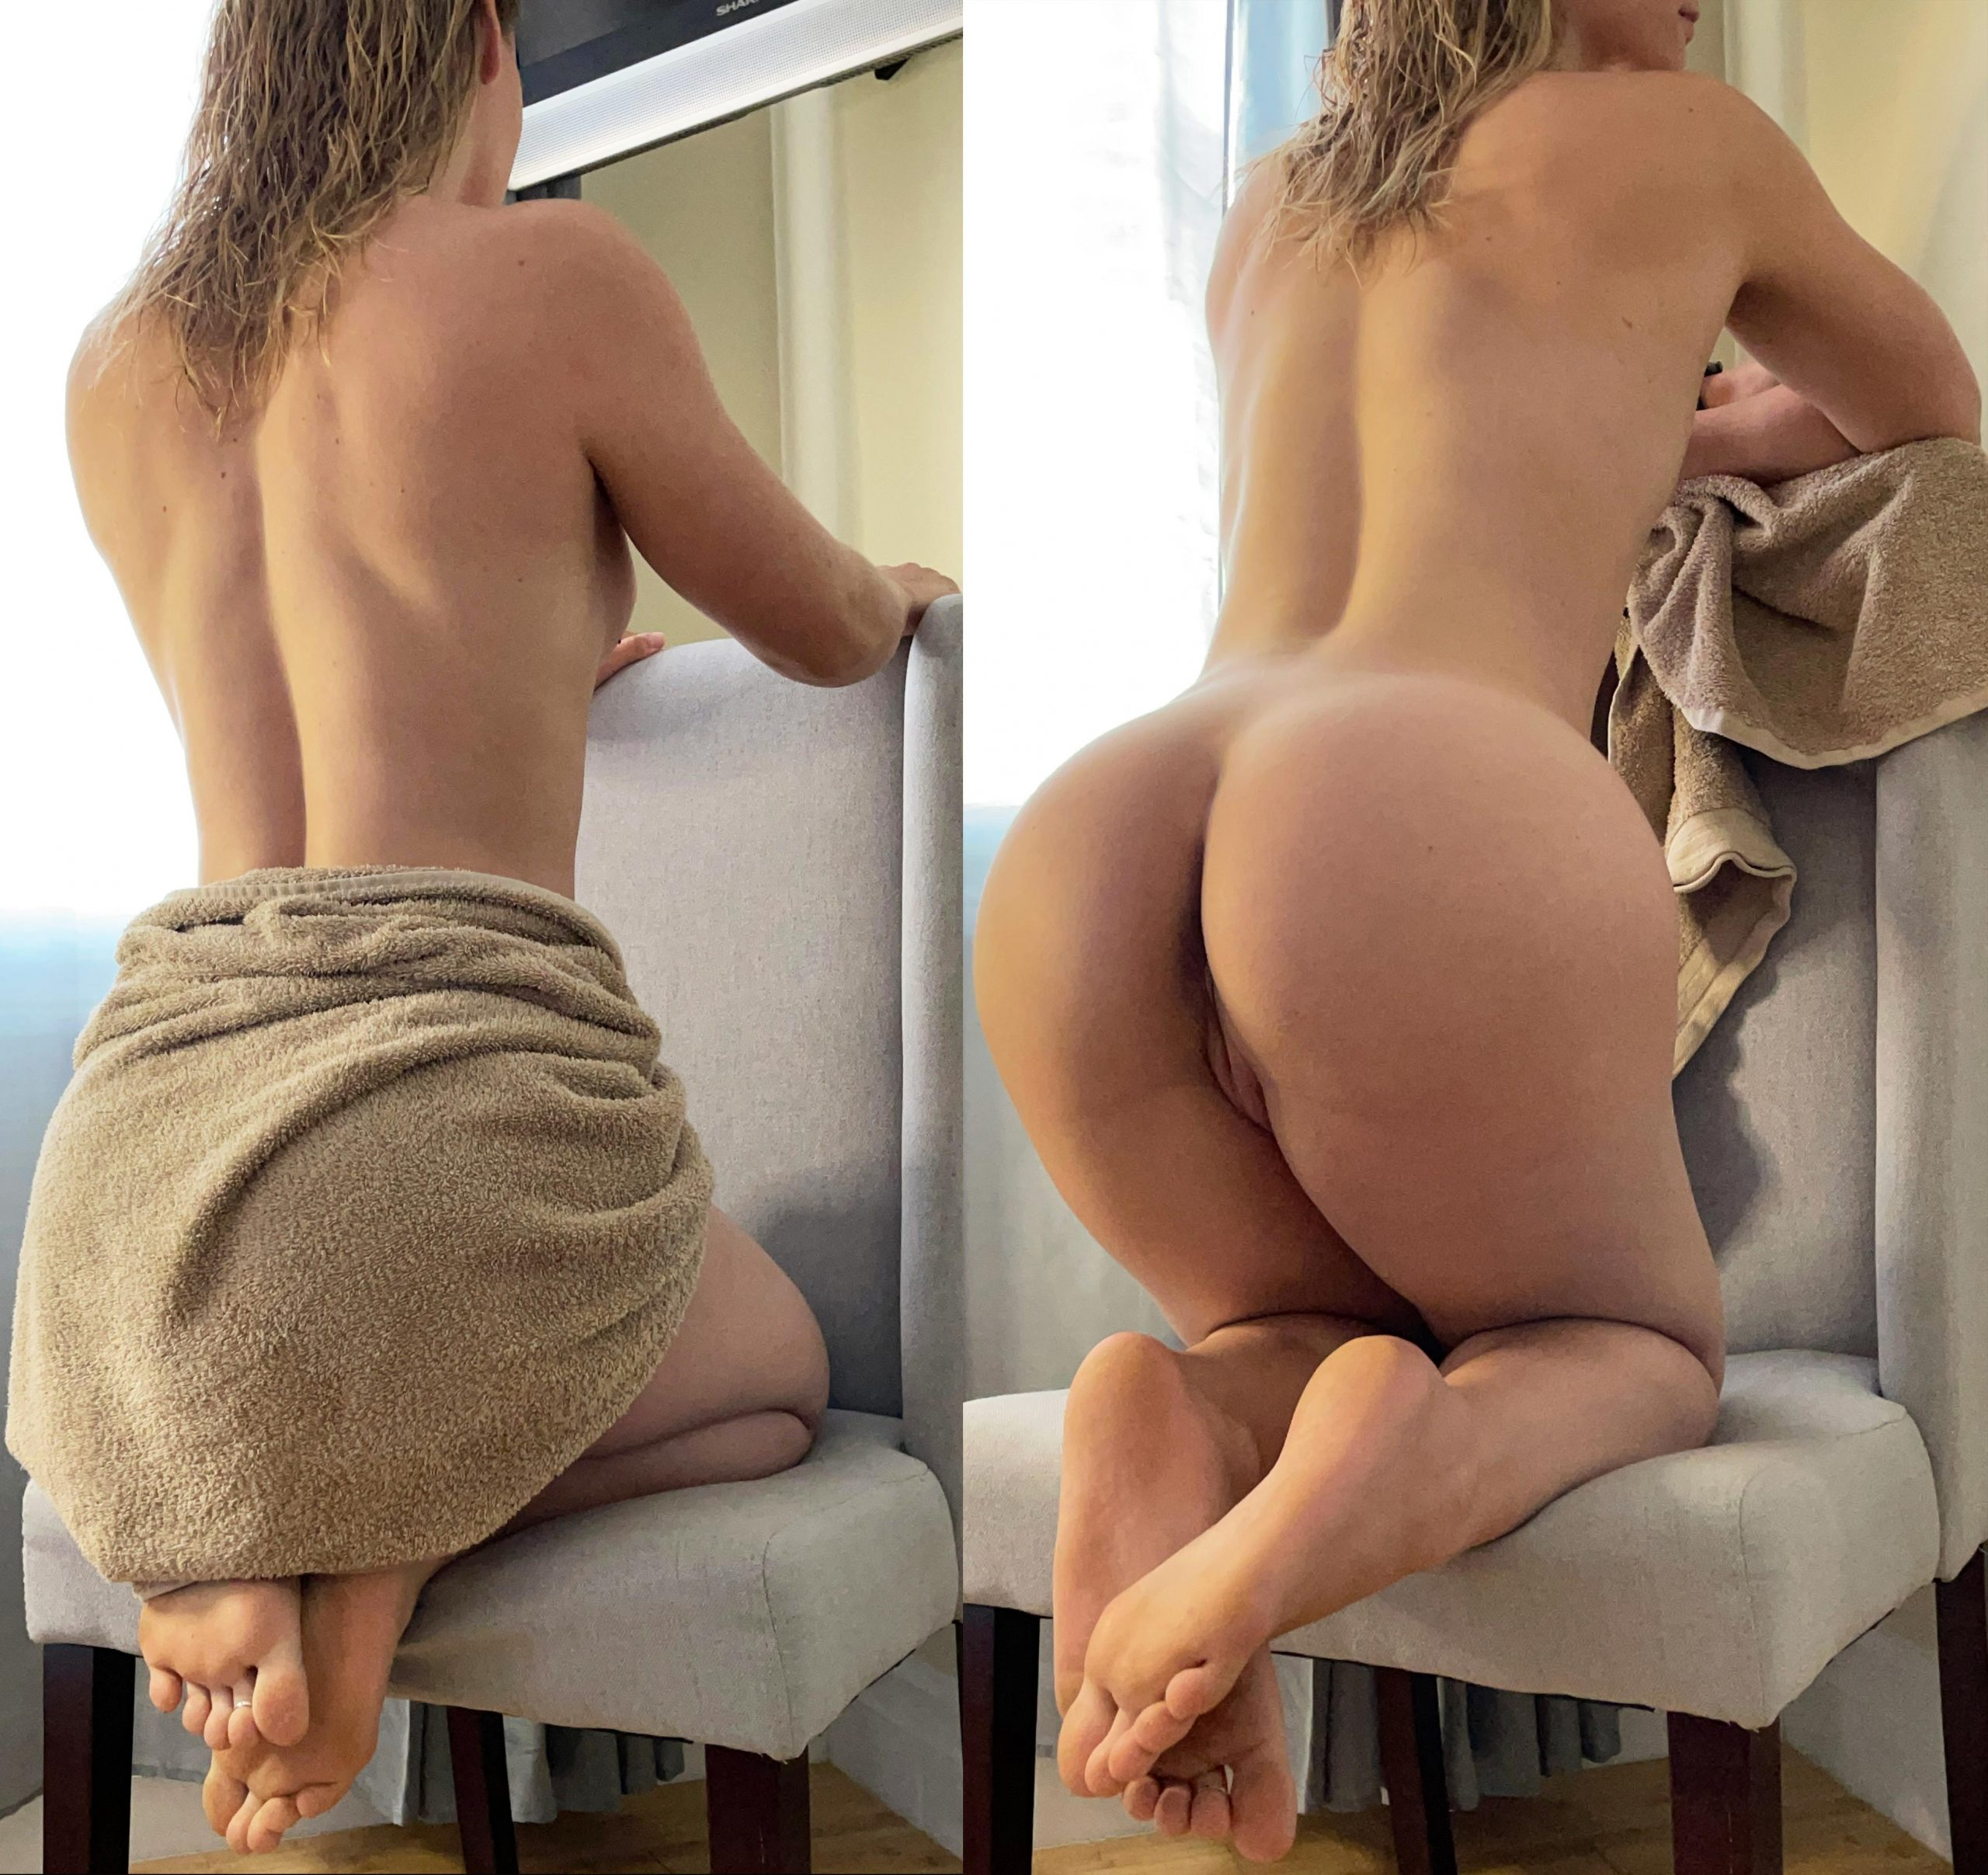 Fuck Me From Behind On This Chair?